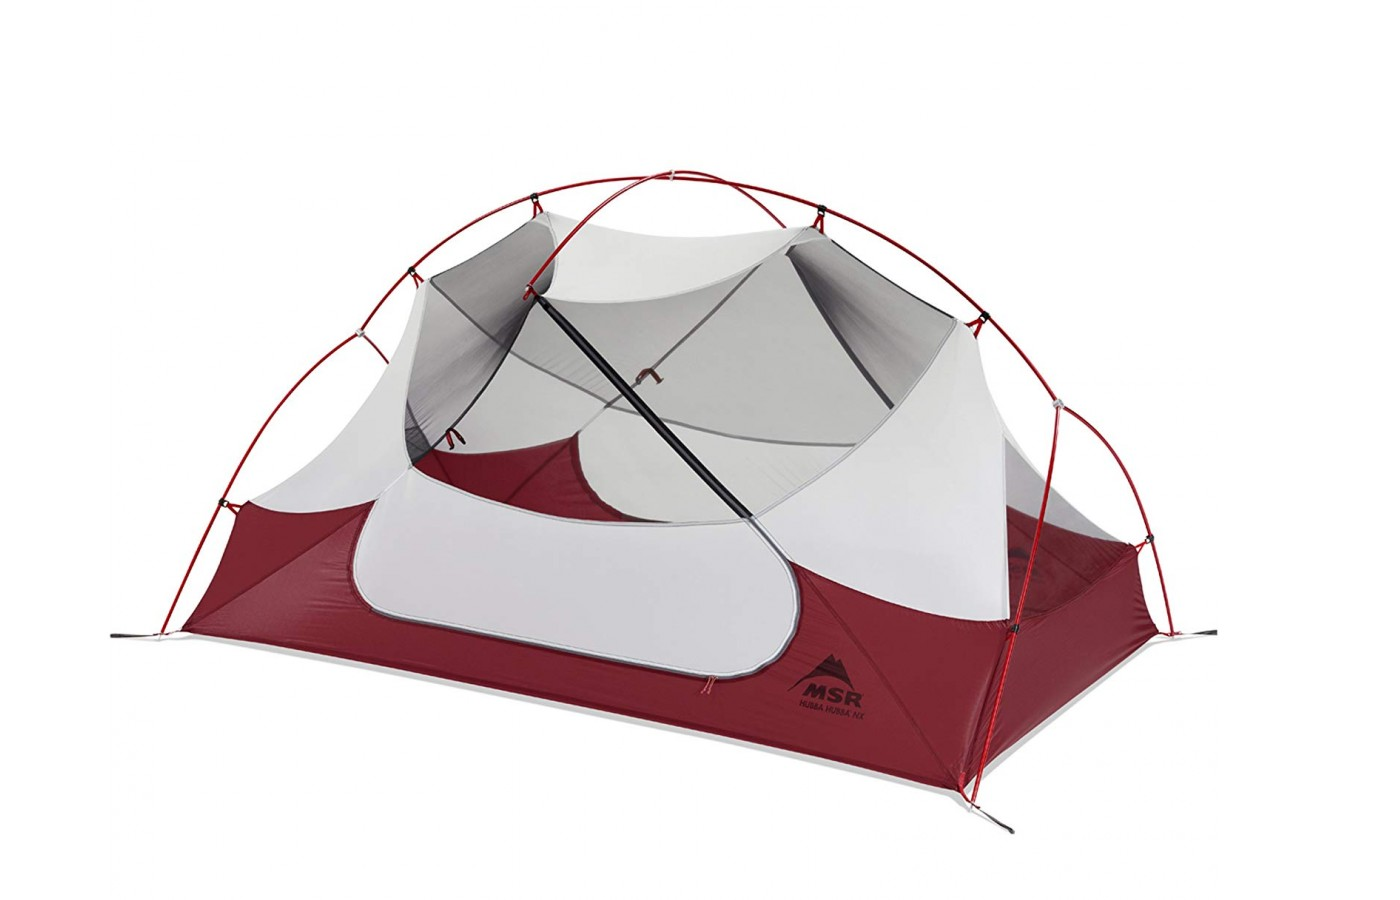 The tent is made with waterproofing materials.